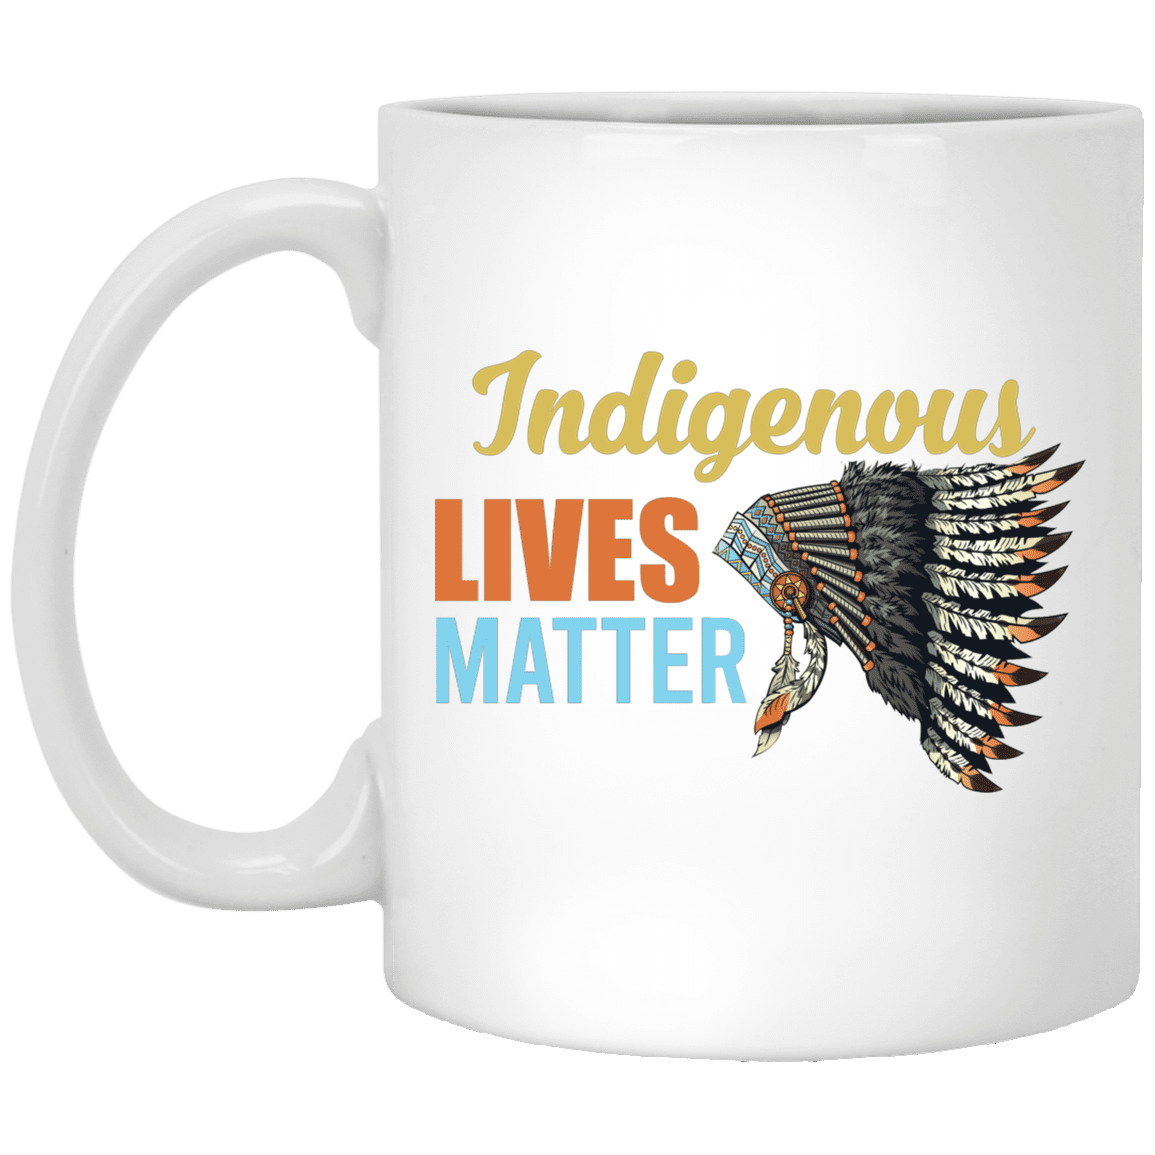 Native American Mug Indigenous Lives Matter Native American Ceramic Coffee Mug Cubebik